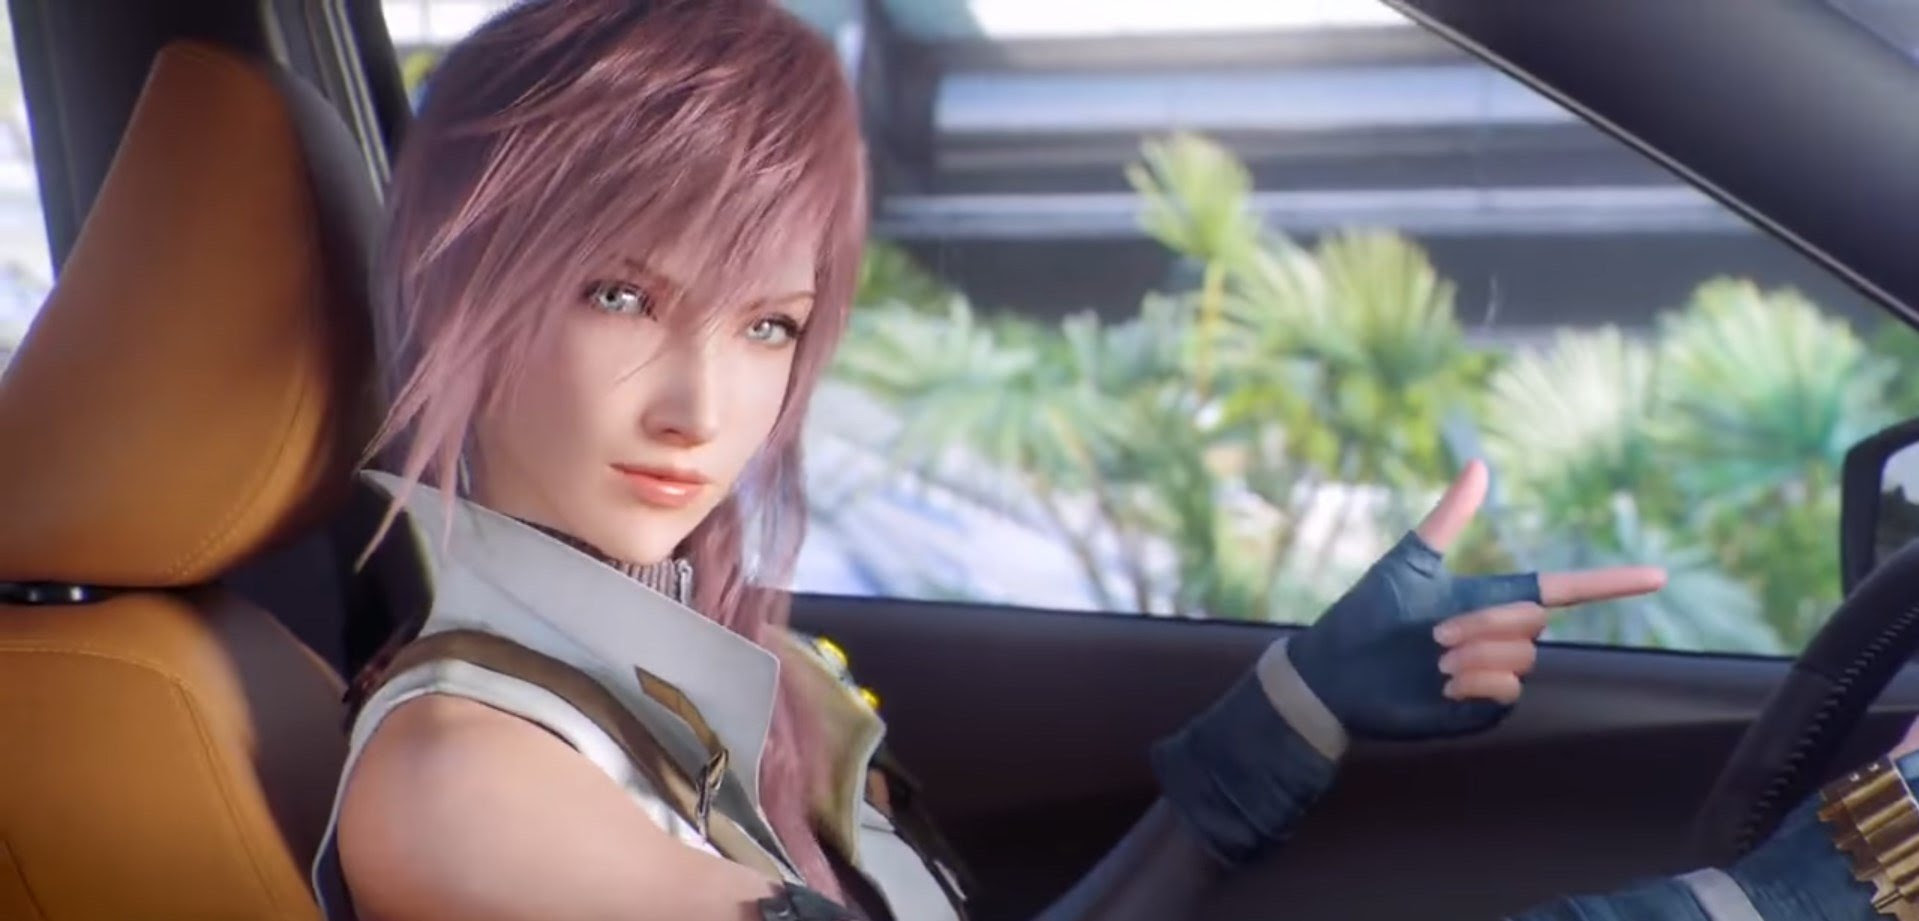 Watch Final Fantasy's Lightning and Snow awkwardly advertise for Nissan in China screenshot